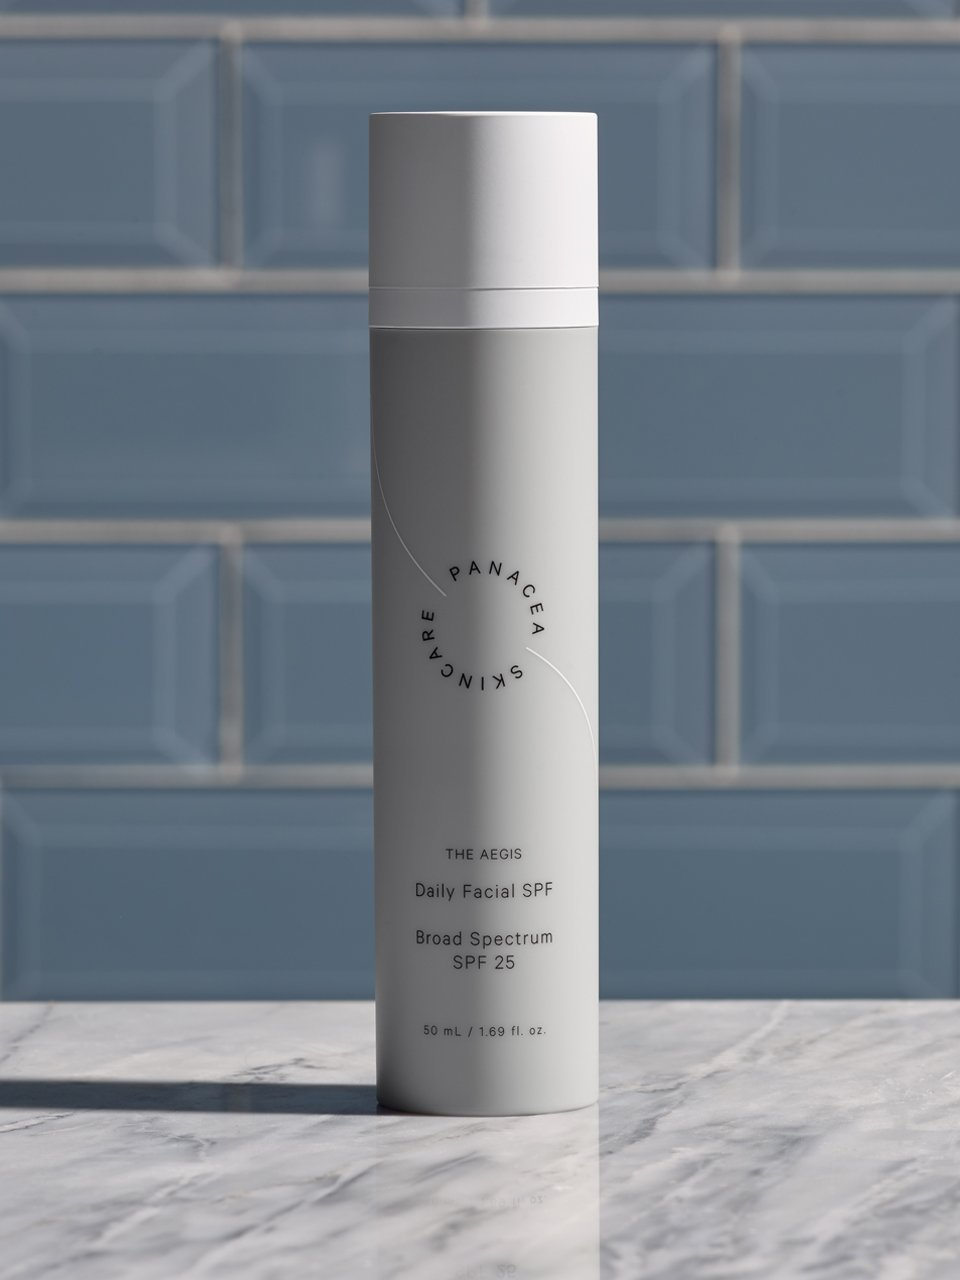 The Panacea - Daily Facial SPF / $32This lightweight sunscreen contains SPF 25 and broad spectrum UVA/UVB protection, shielding you against harmful environmental factors. Virtually scentless, our SPF can be used under makeup and leaves your skin with a non-greasy finish.